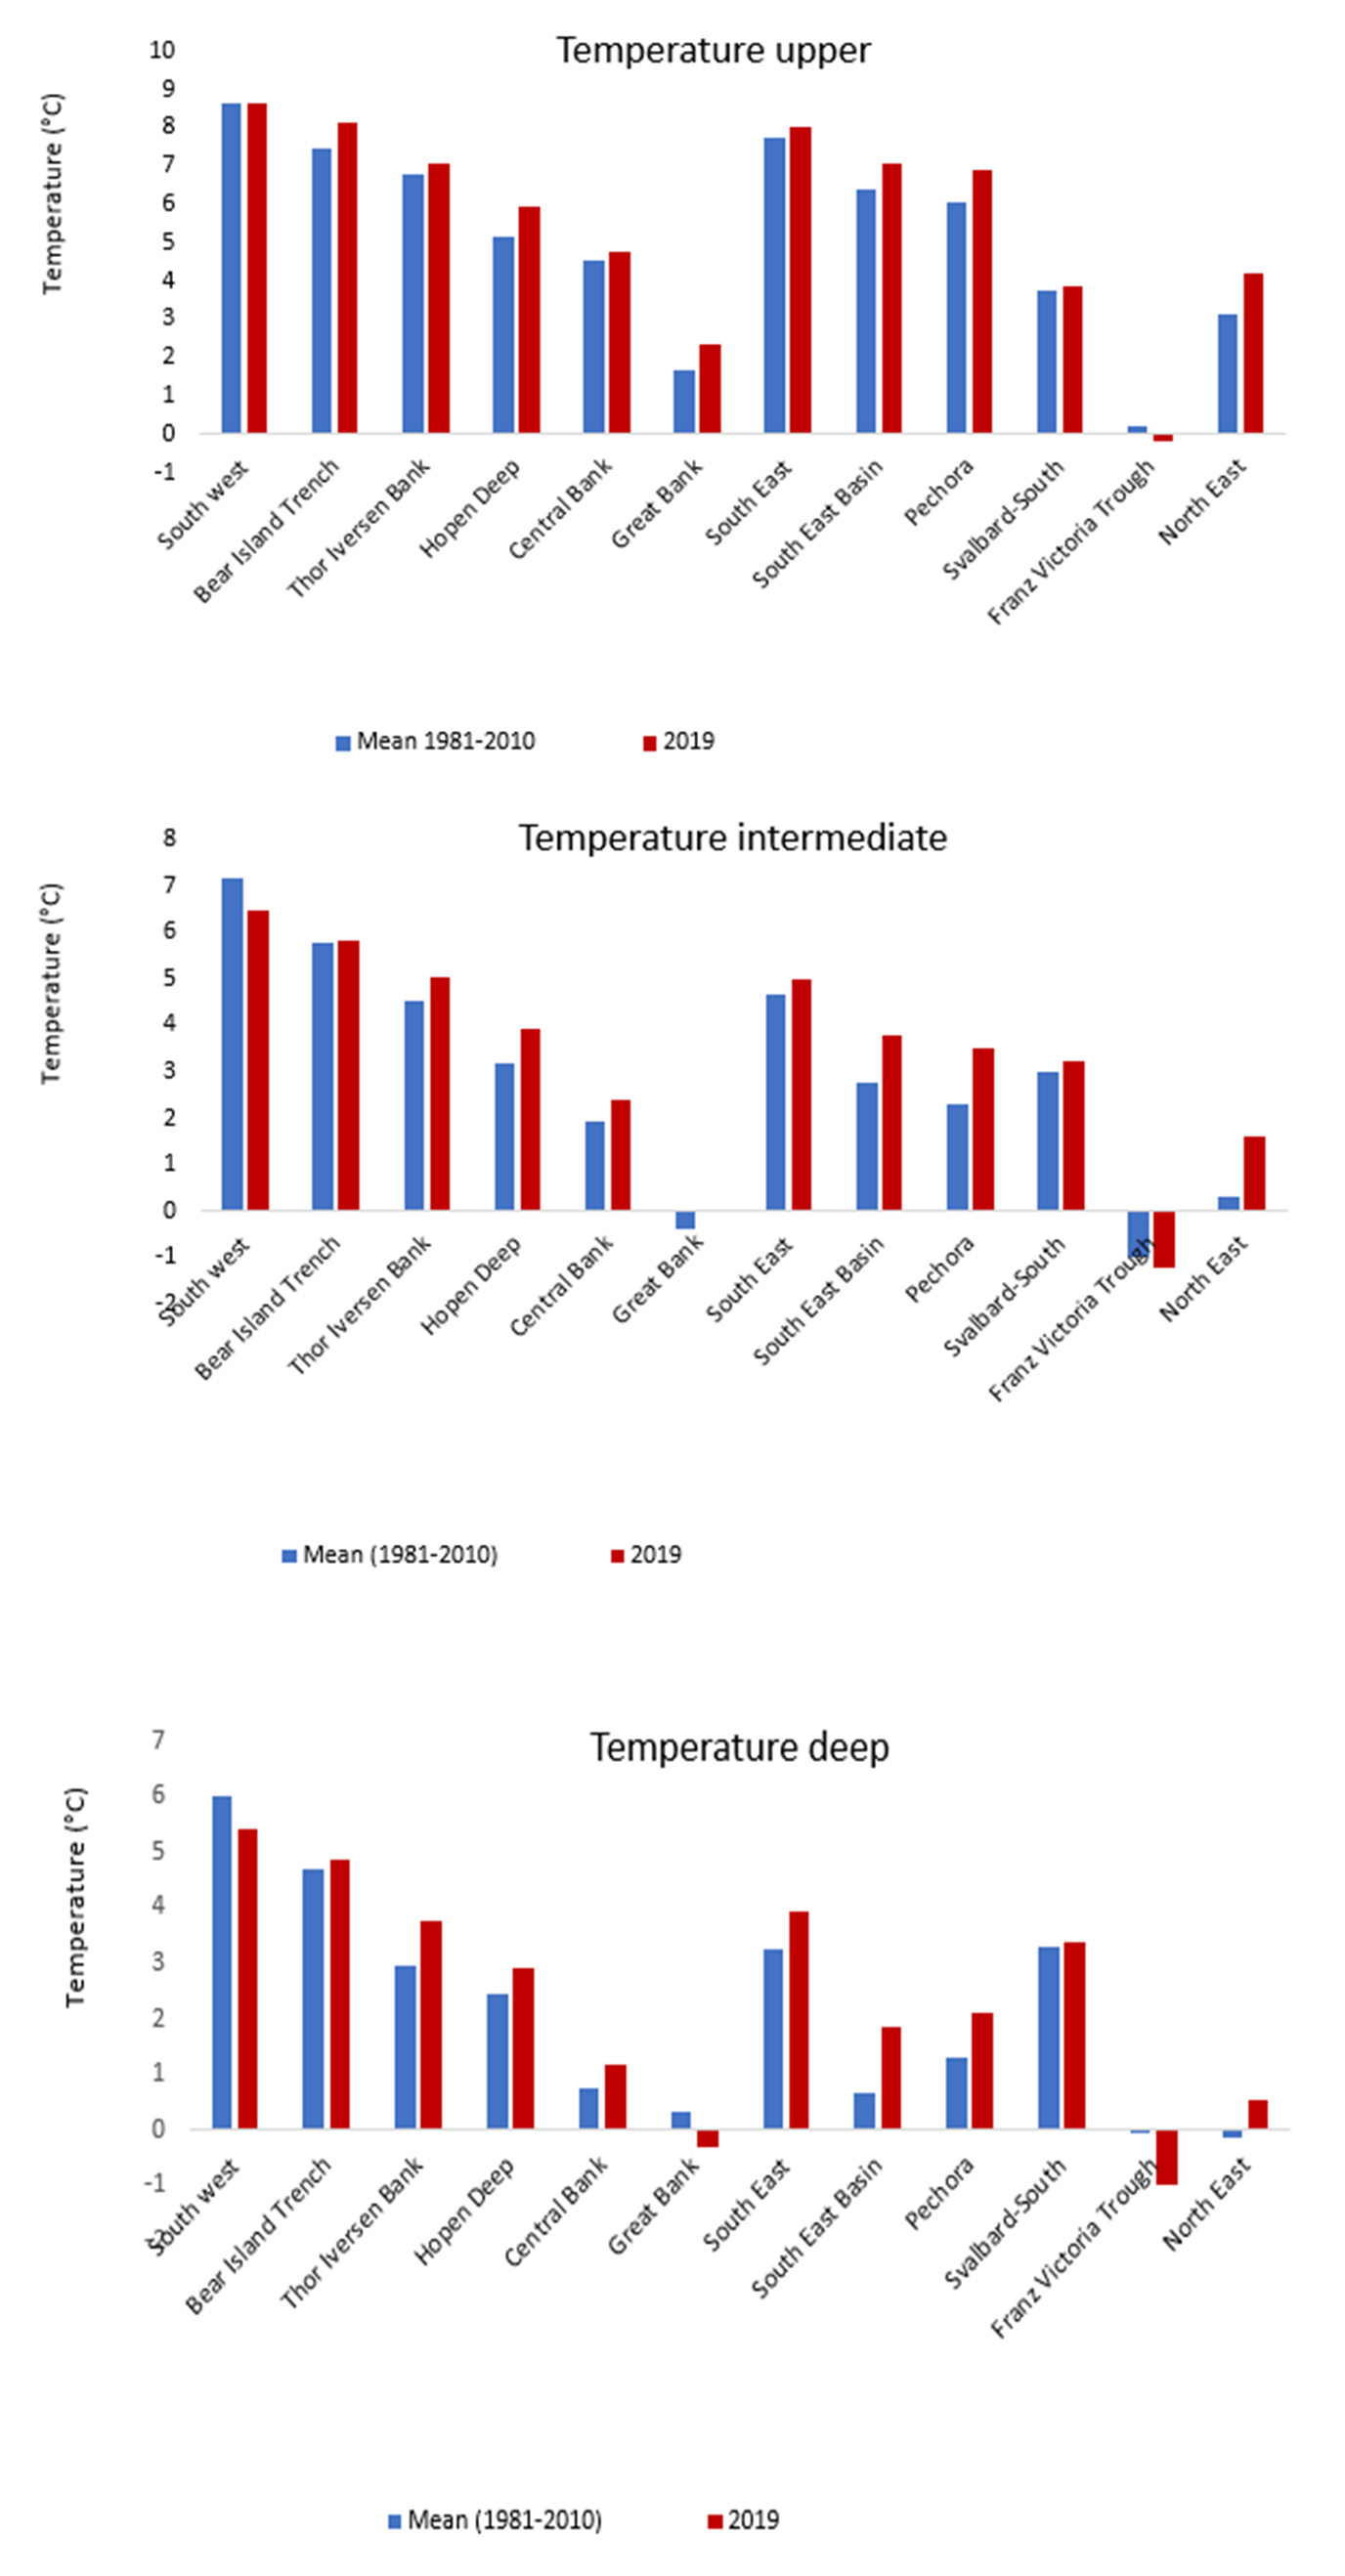 Figure 3.1.16. Average temperature in the polygons with data coverage in 2019 (red bars) and mean temperature for the period 1981–2020 (blue bars).